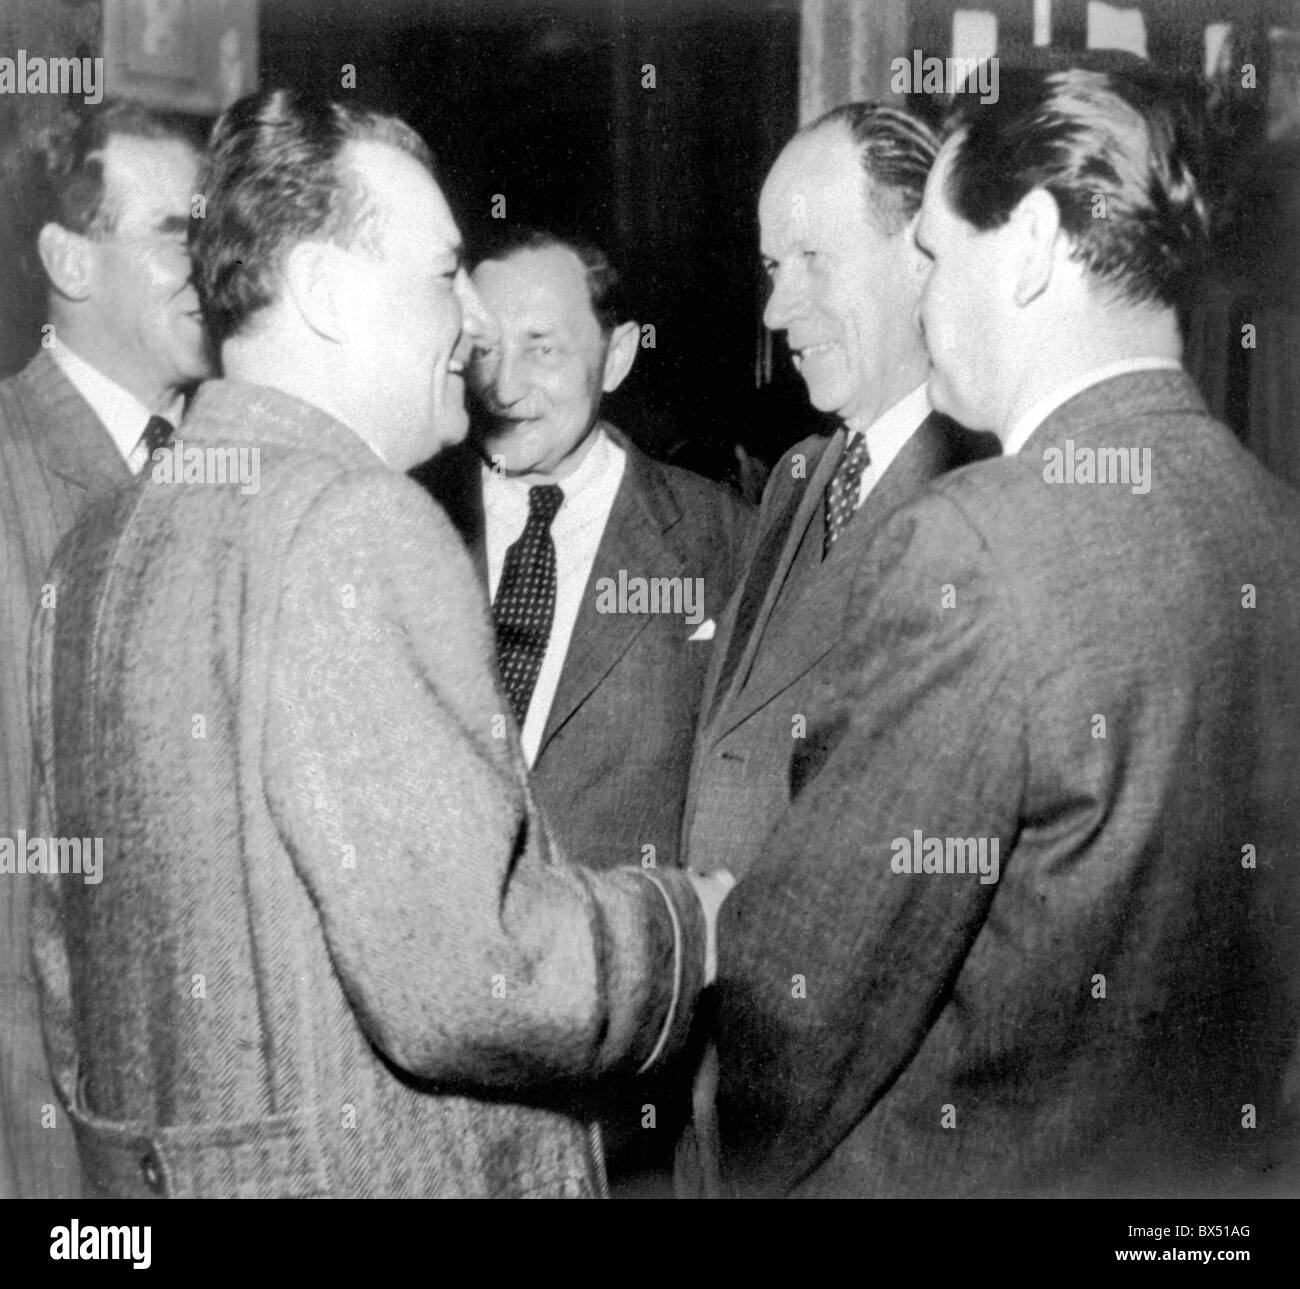 Czechoslovak President K.Gottwald talks to Czechoslovak Prime Minister Antonin Zapotocky (2nd from right) and his - Stock Image